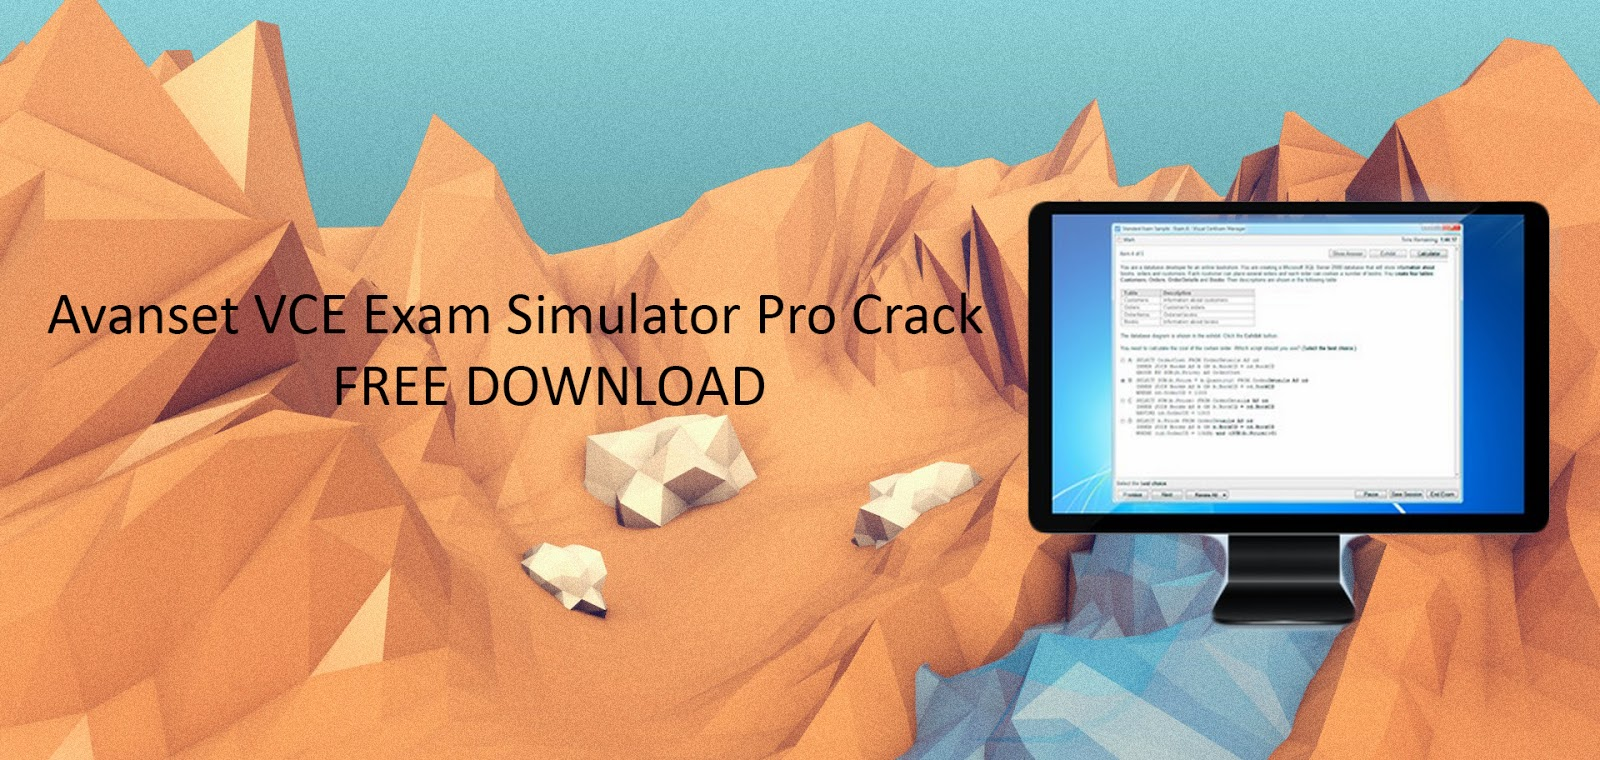 Avanset VCE Exam Simulator Free Download